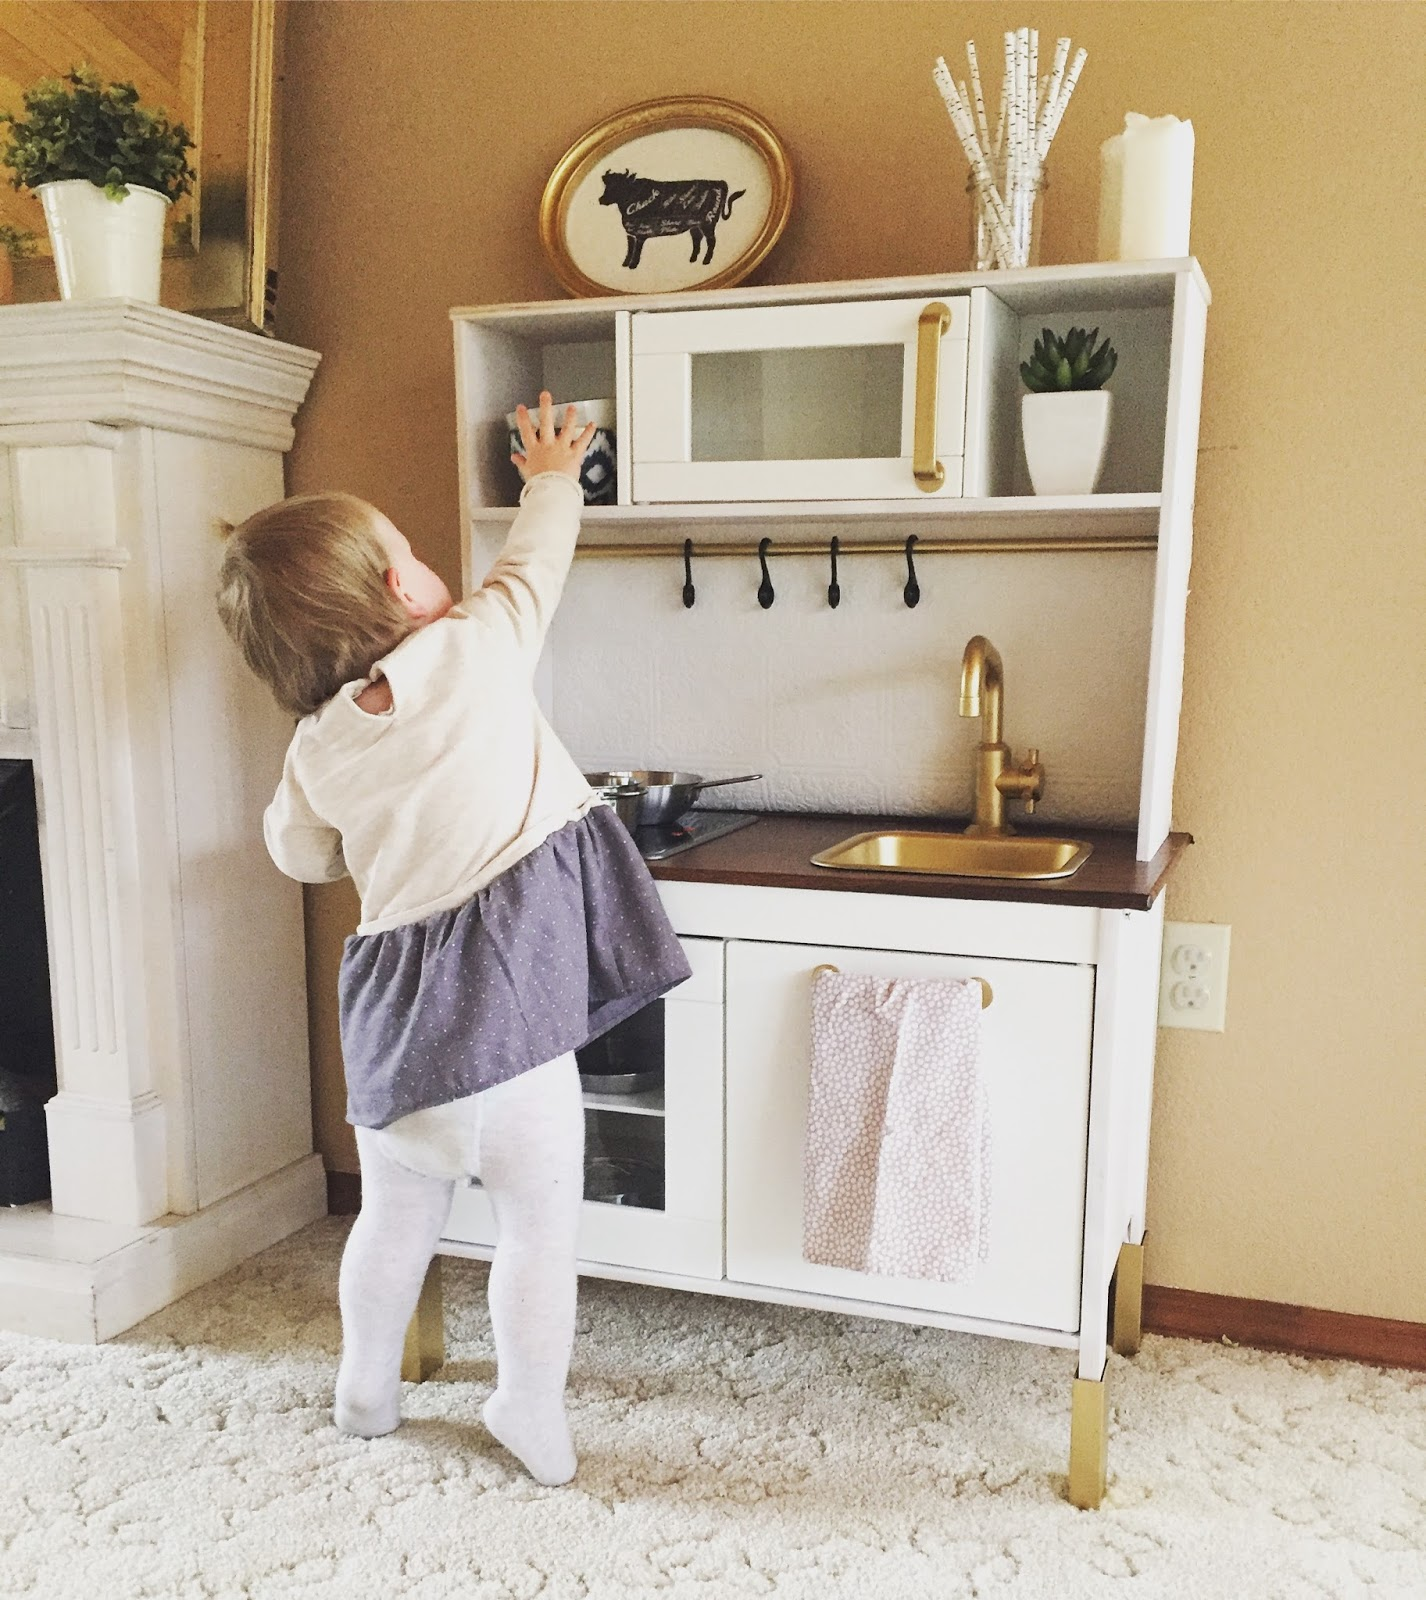 Ikea Hack Toddler Kitchen The Things We Would Blog